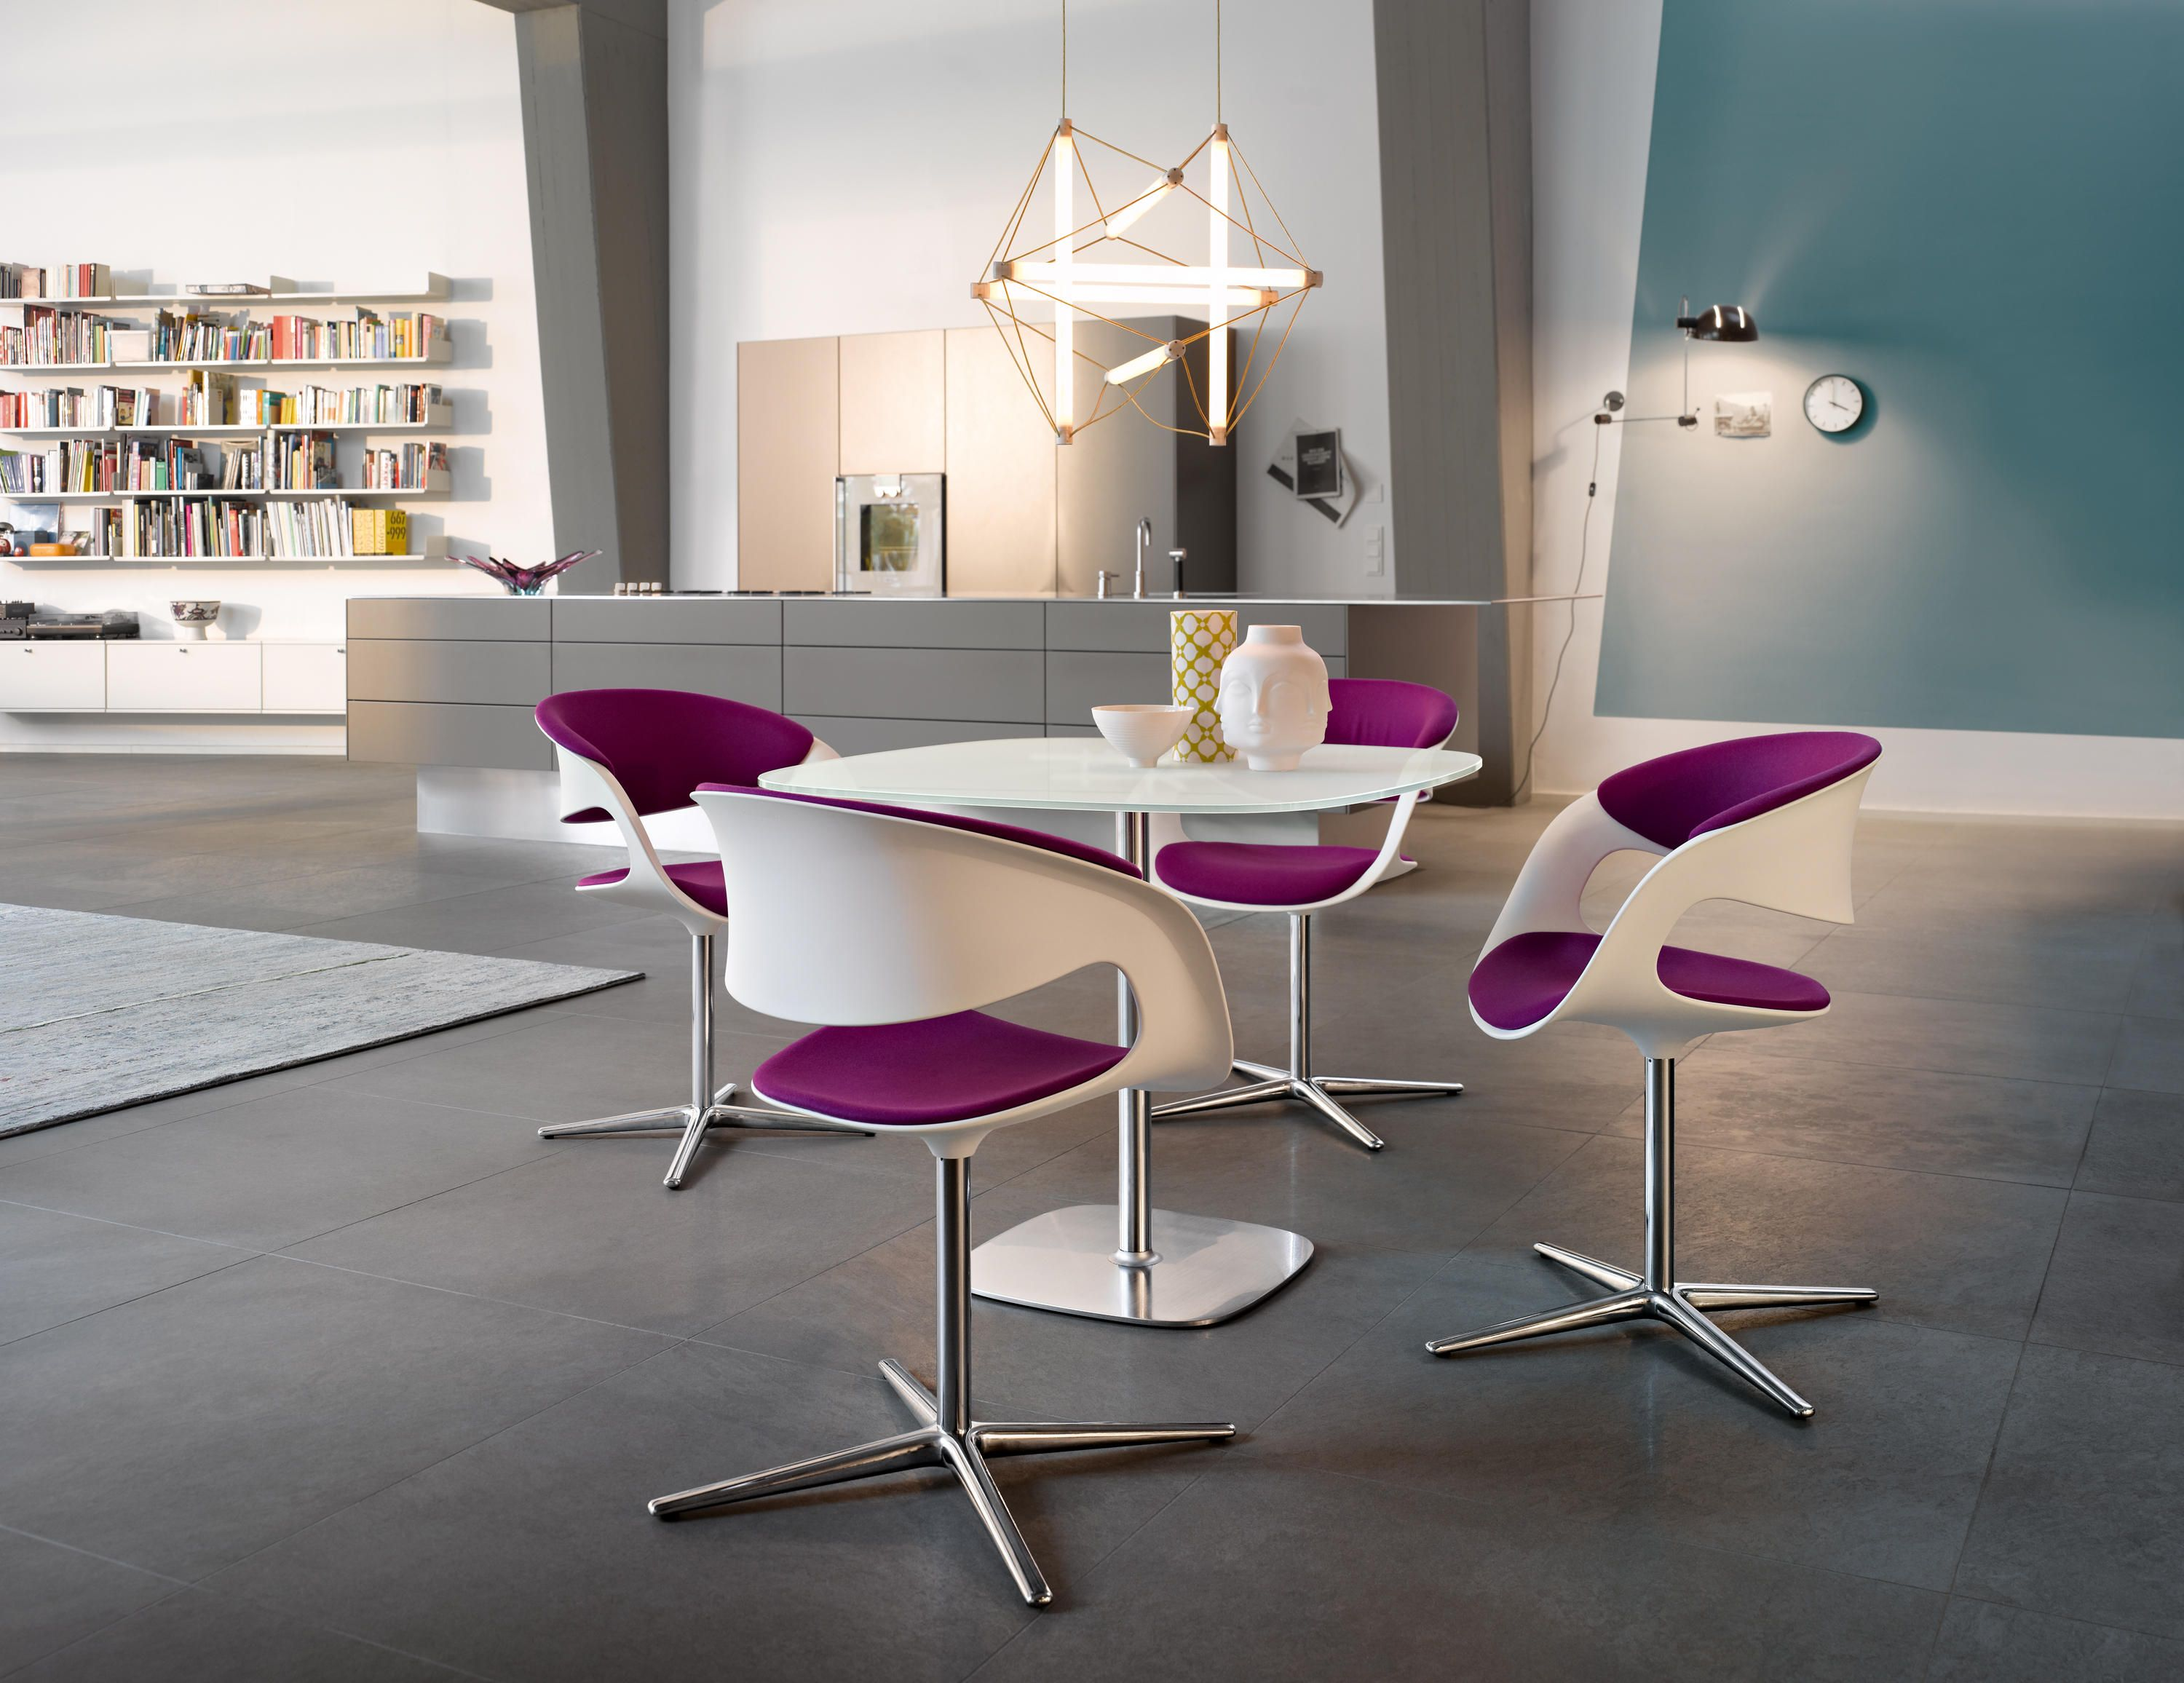 Lox Table Dining Tables From Walter Knoll Architonic Furniture Interior Design Knoll Furniture